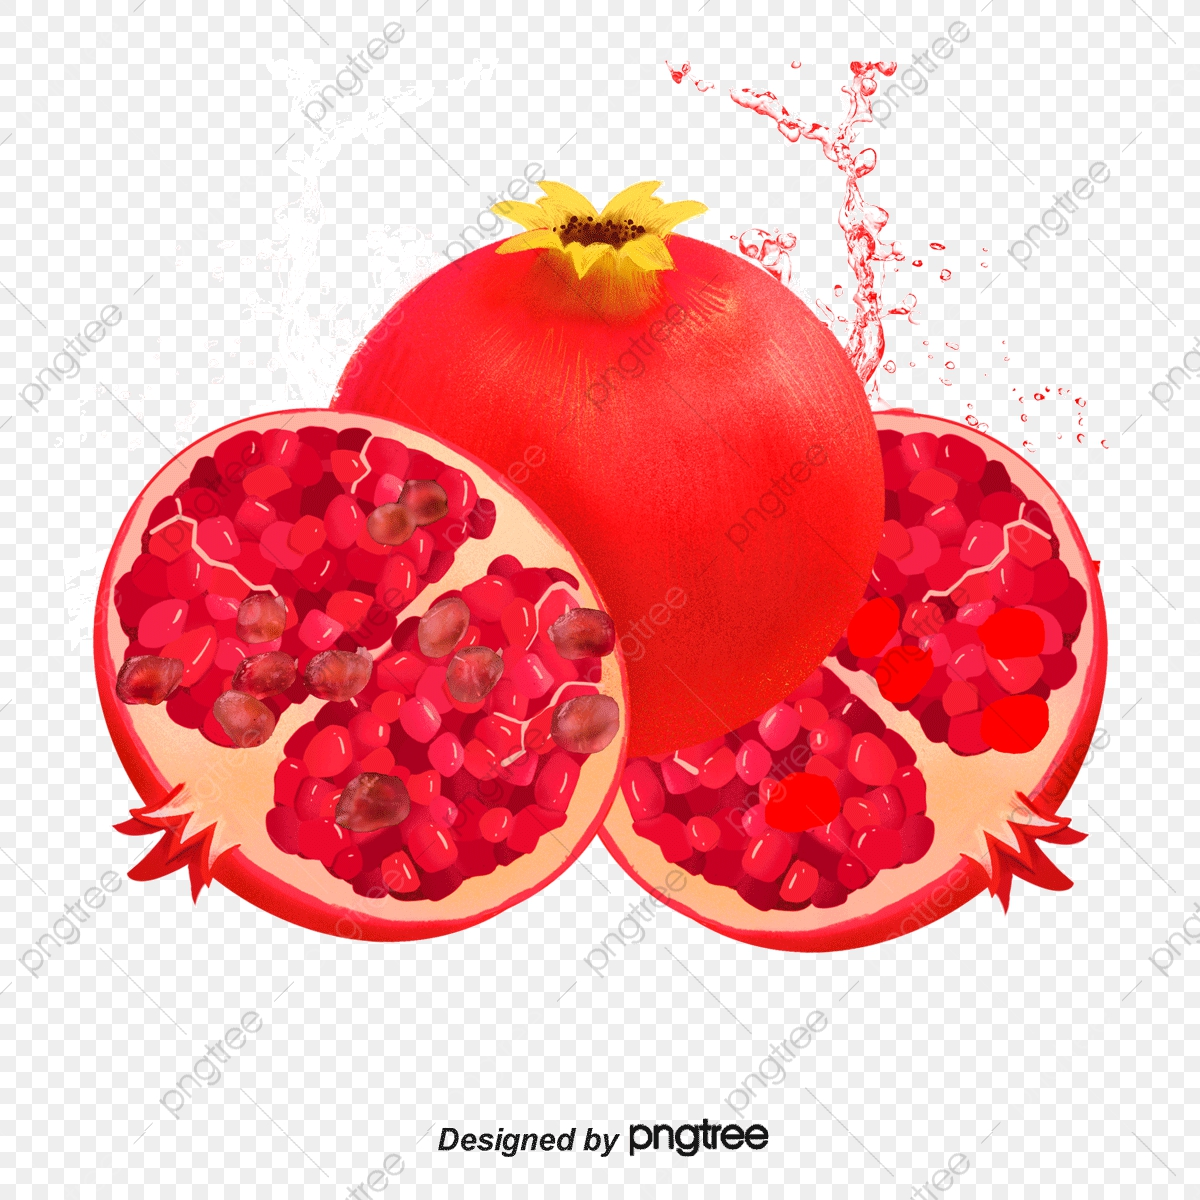 Pomegranate Fruit, Gules, Pomegranate, Fruits PNG.